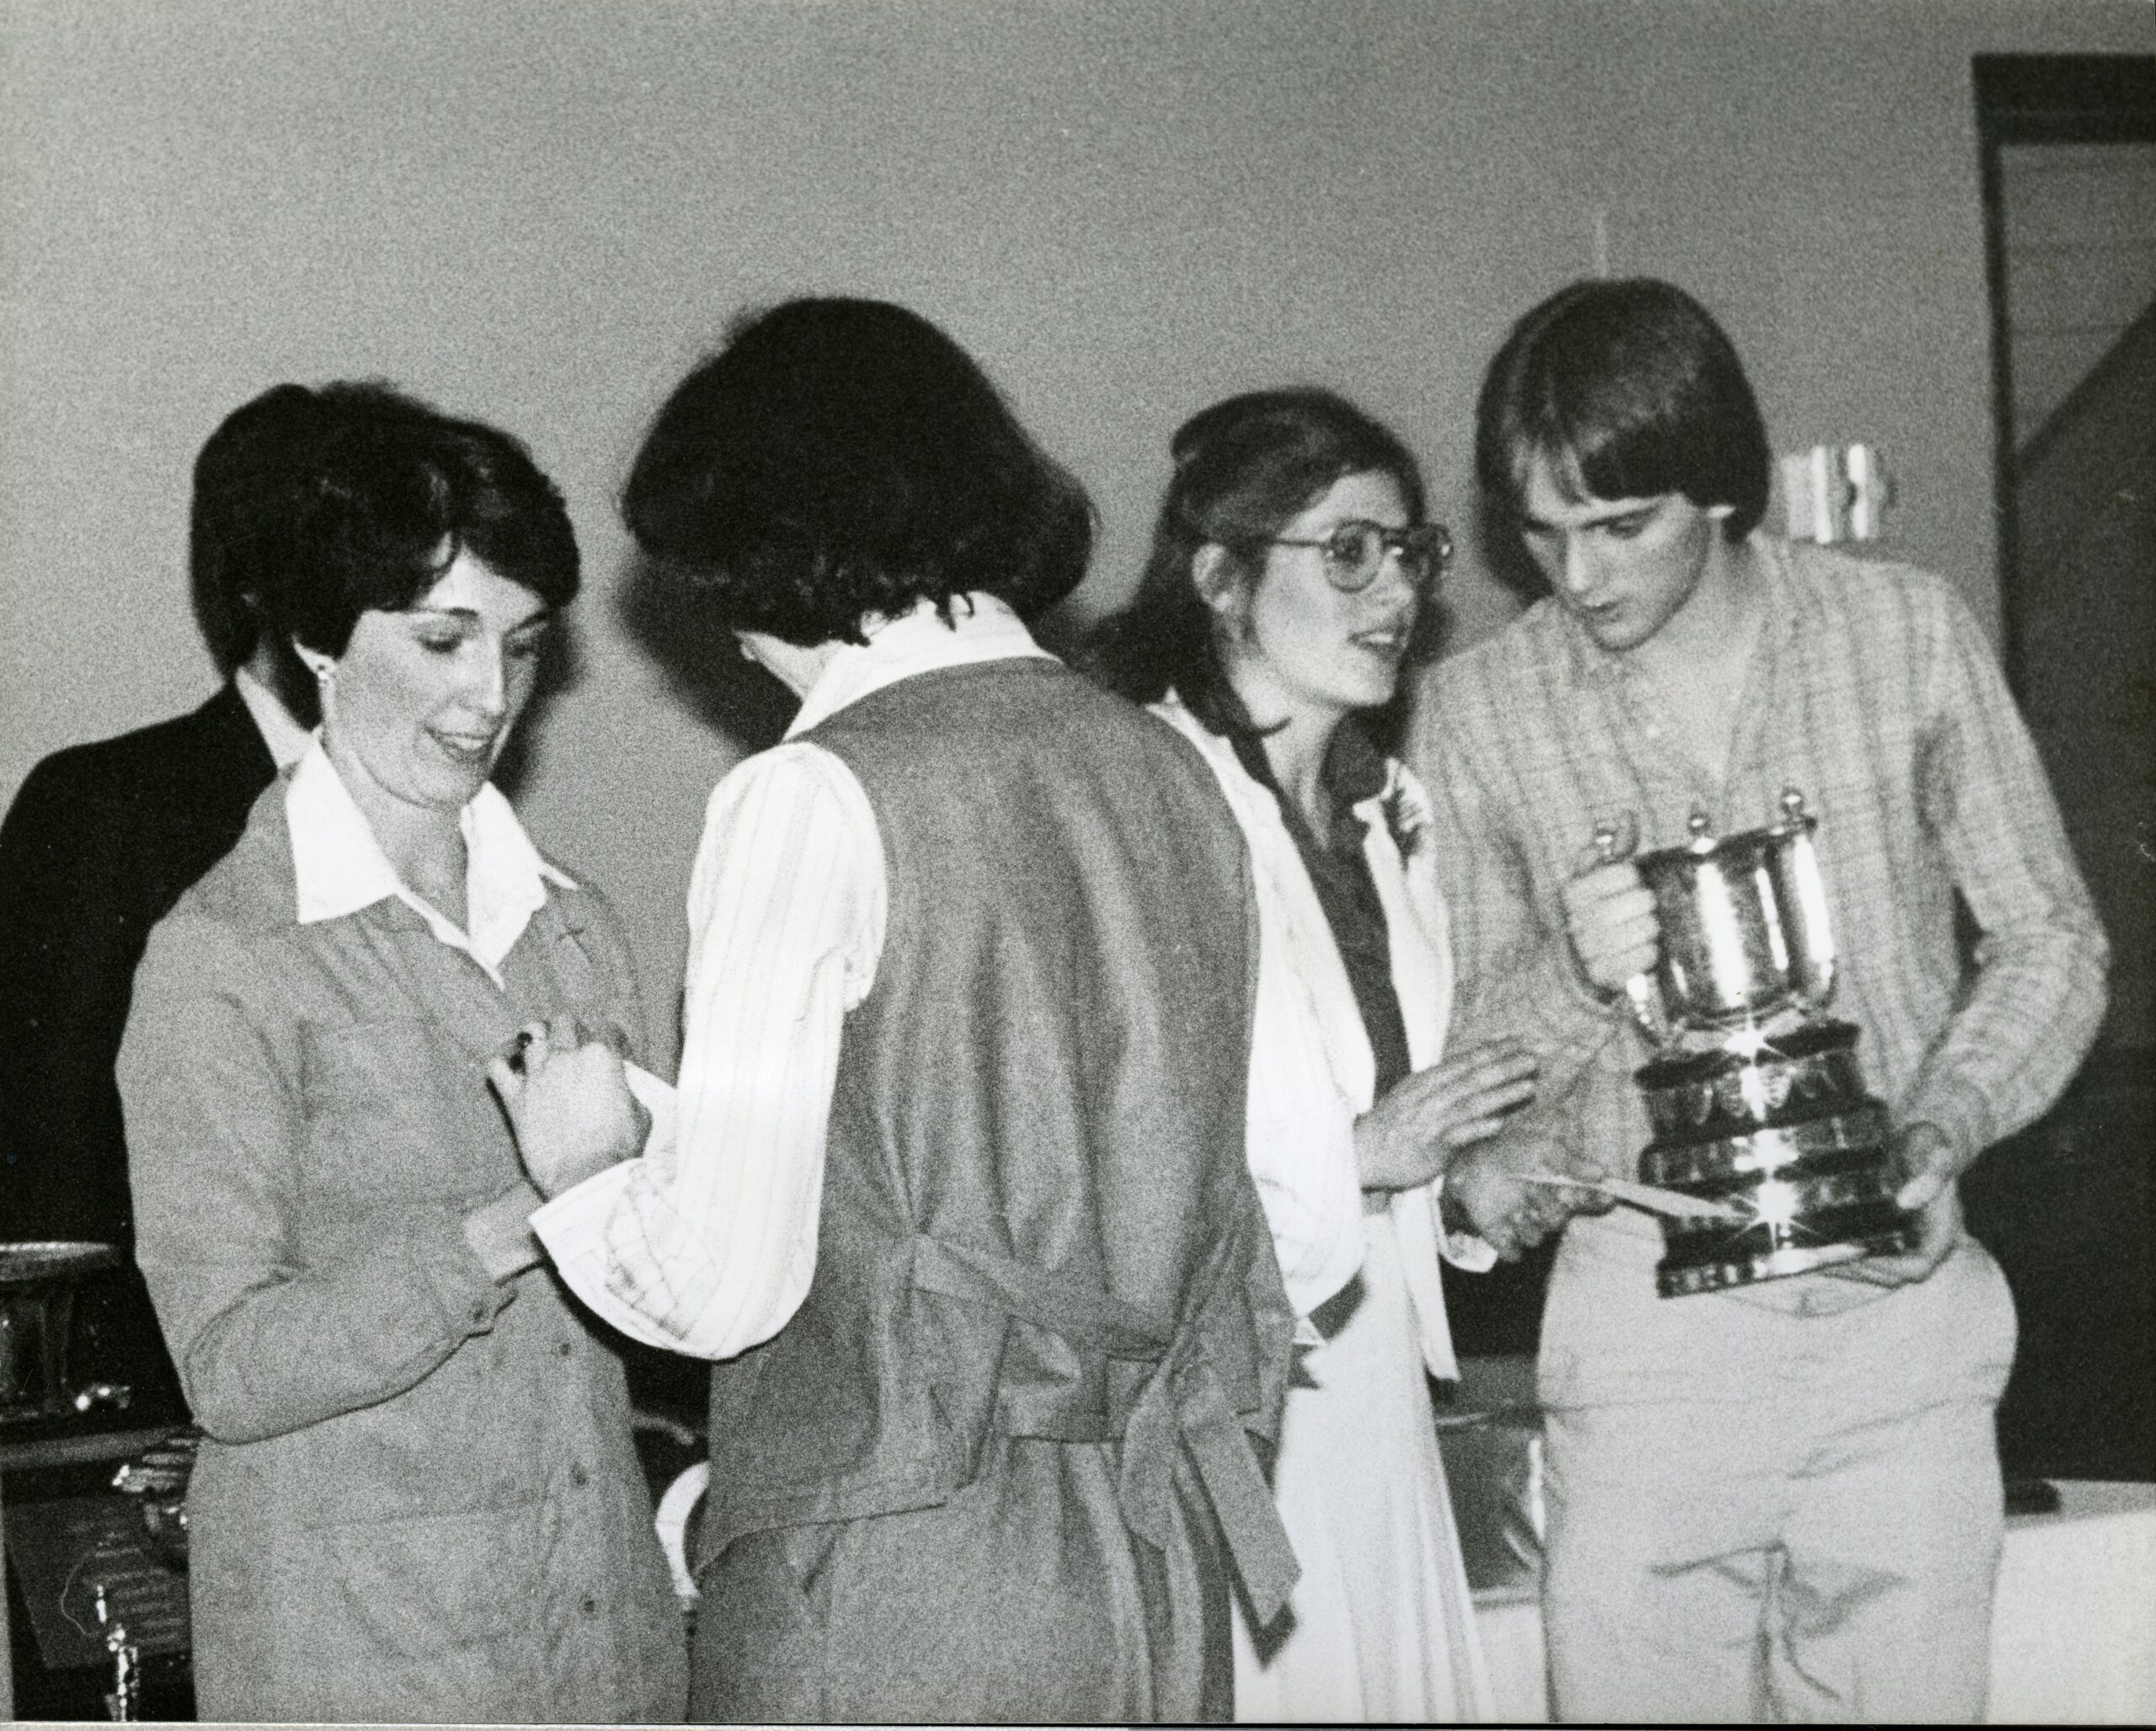 image depicts a black and white photo of males and females receiving awards